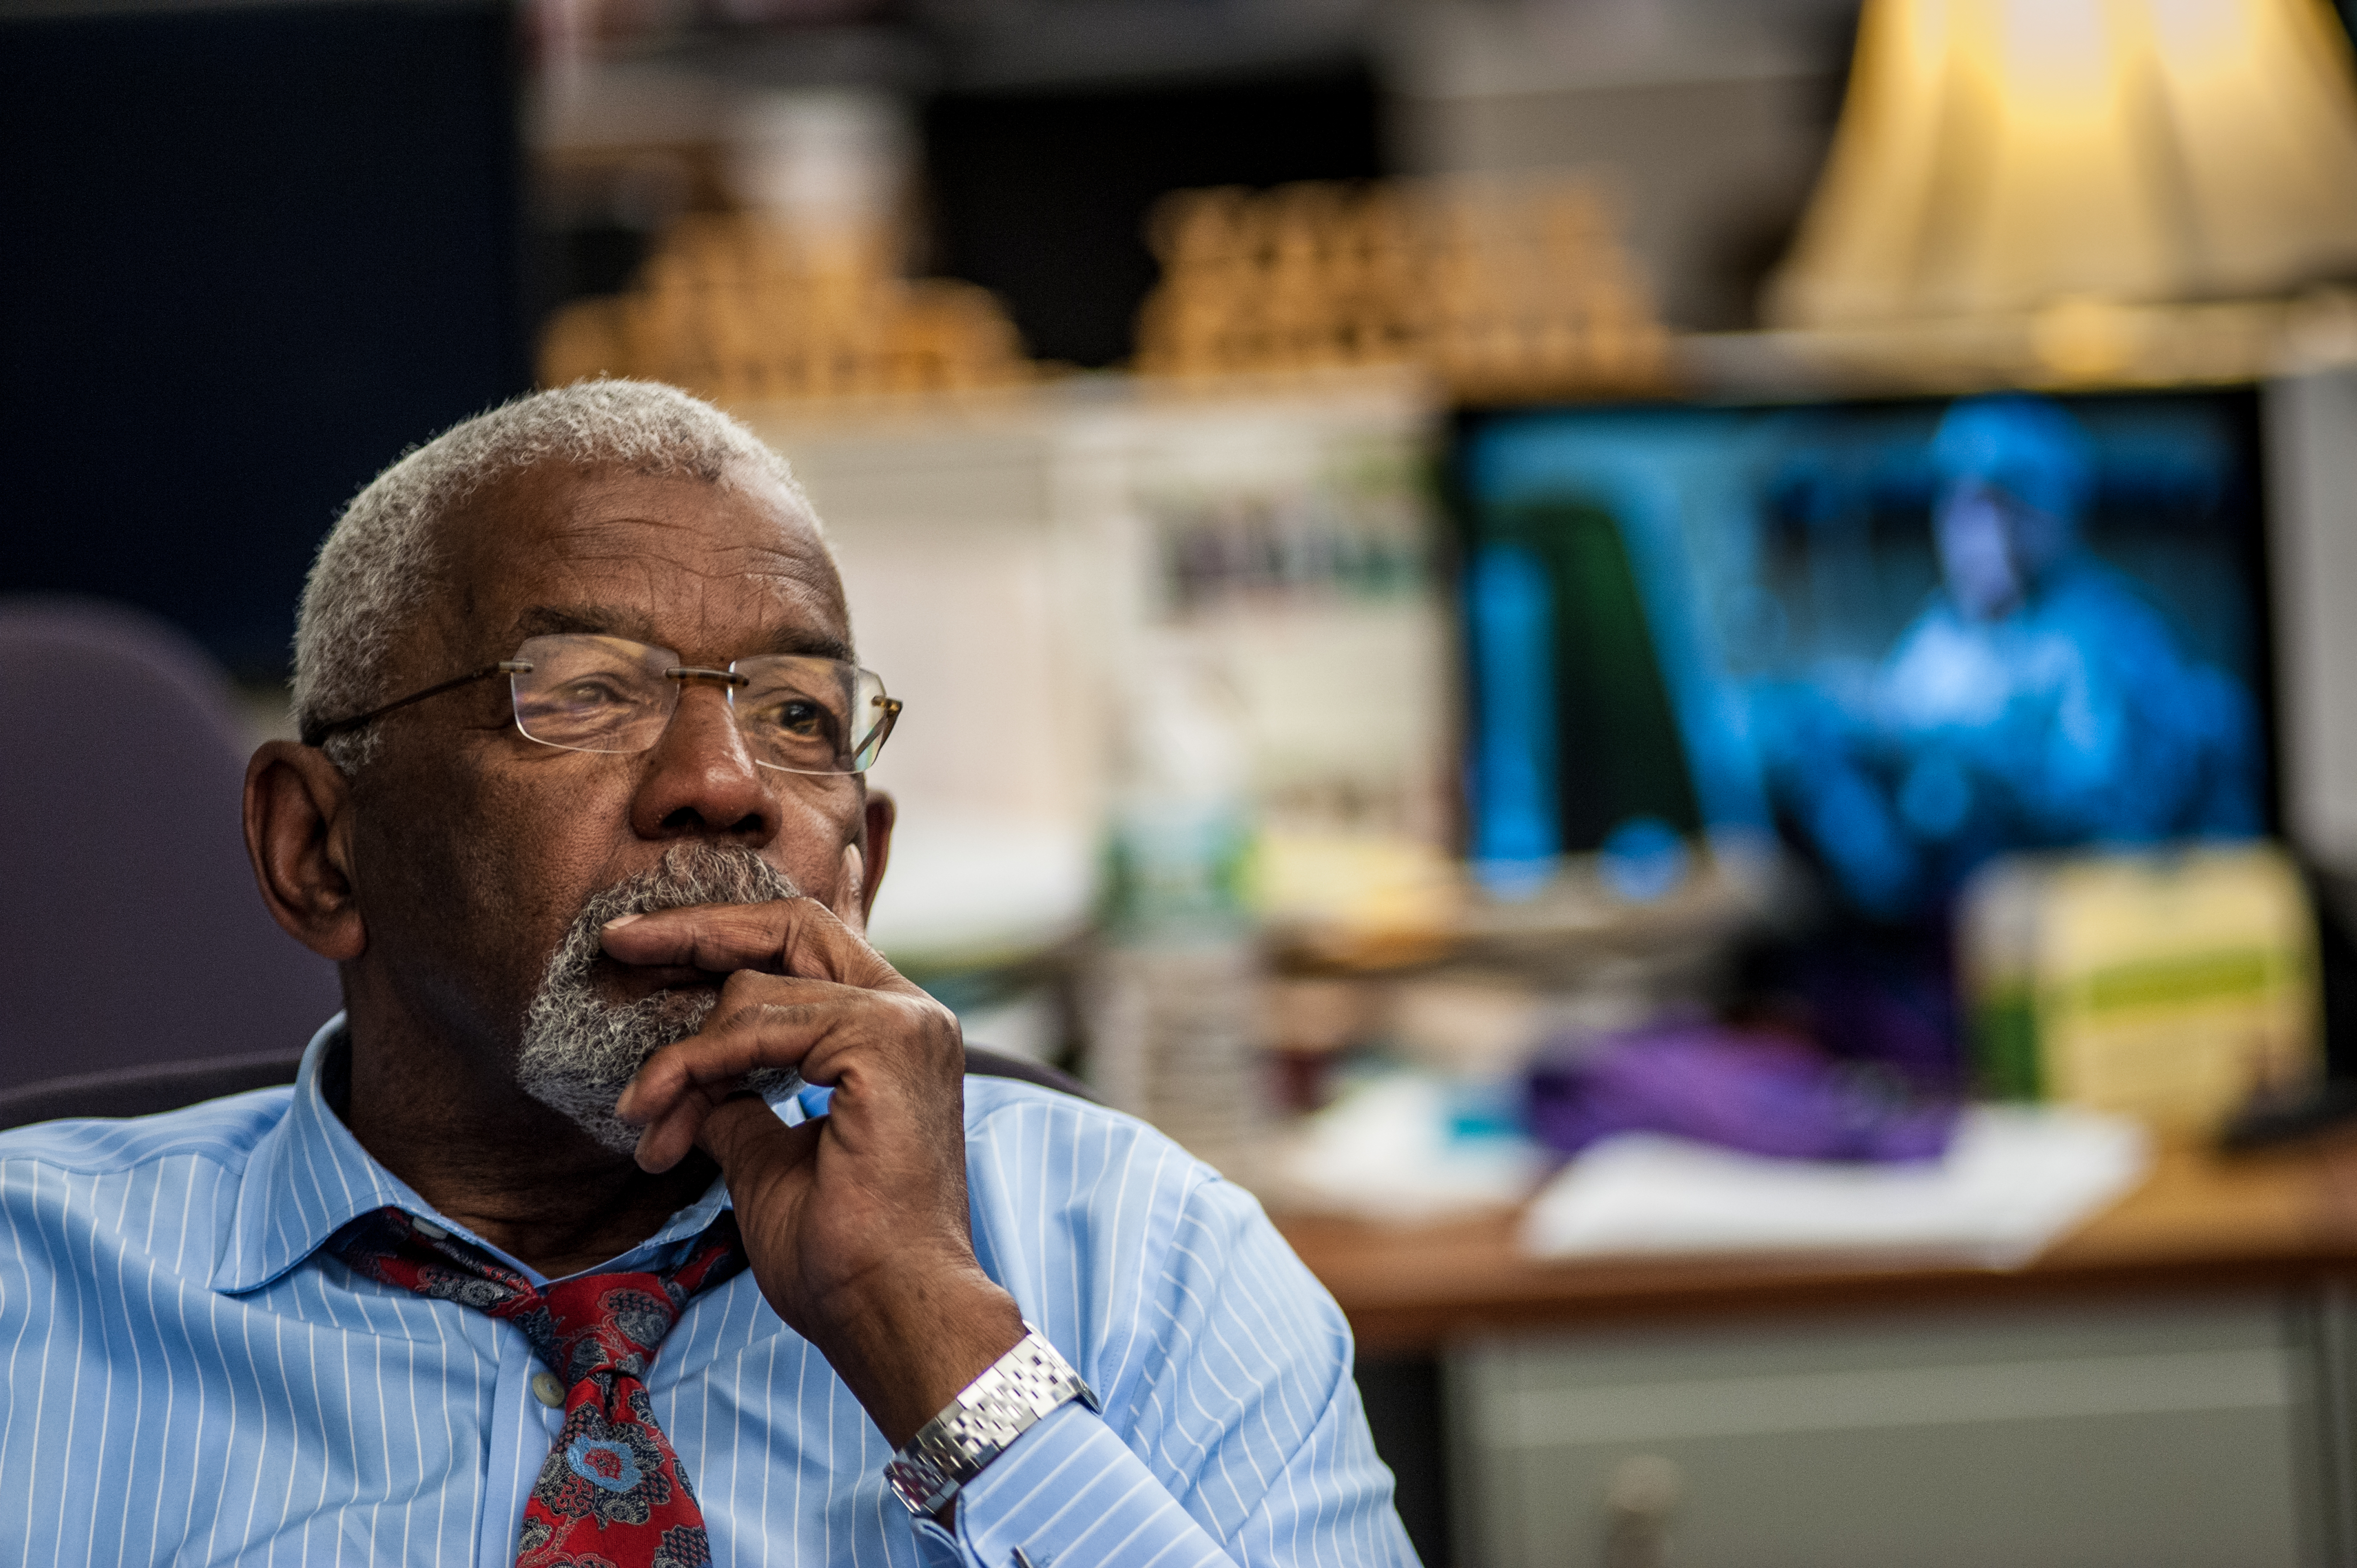 Doreen Gentzler and Jim Vance have been at NBC4.They've been continuously anchoring the 6 pm and 11 pm broadcasts since 1989.